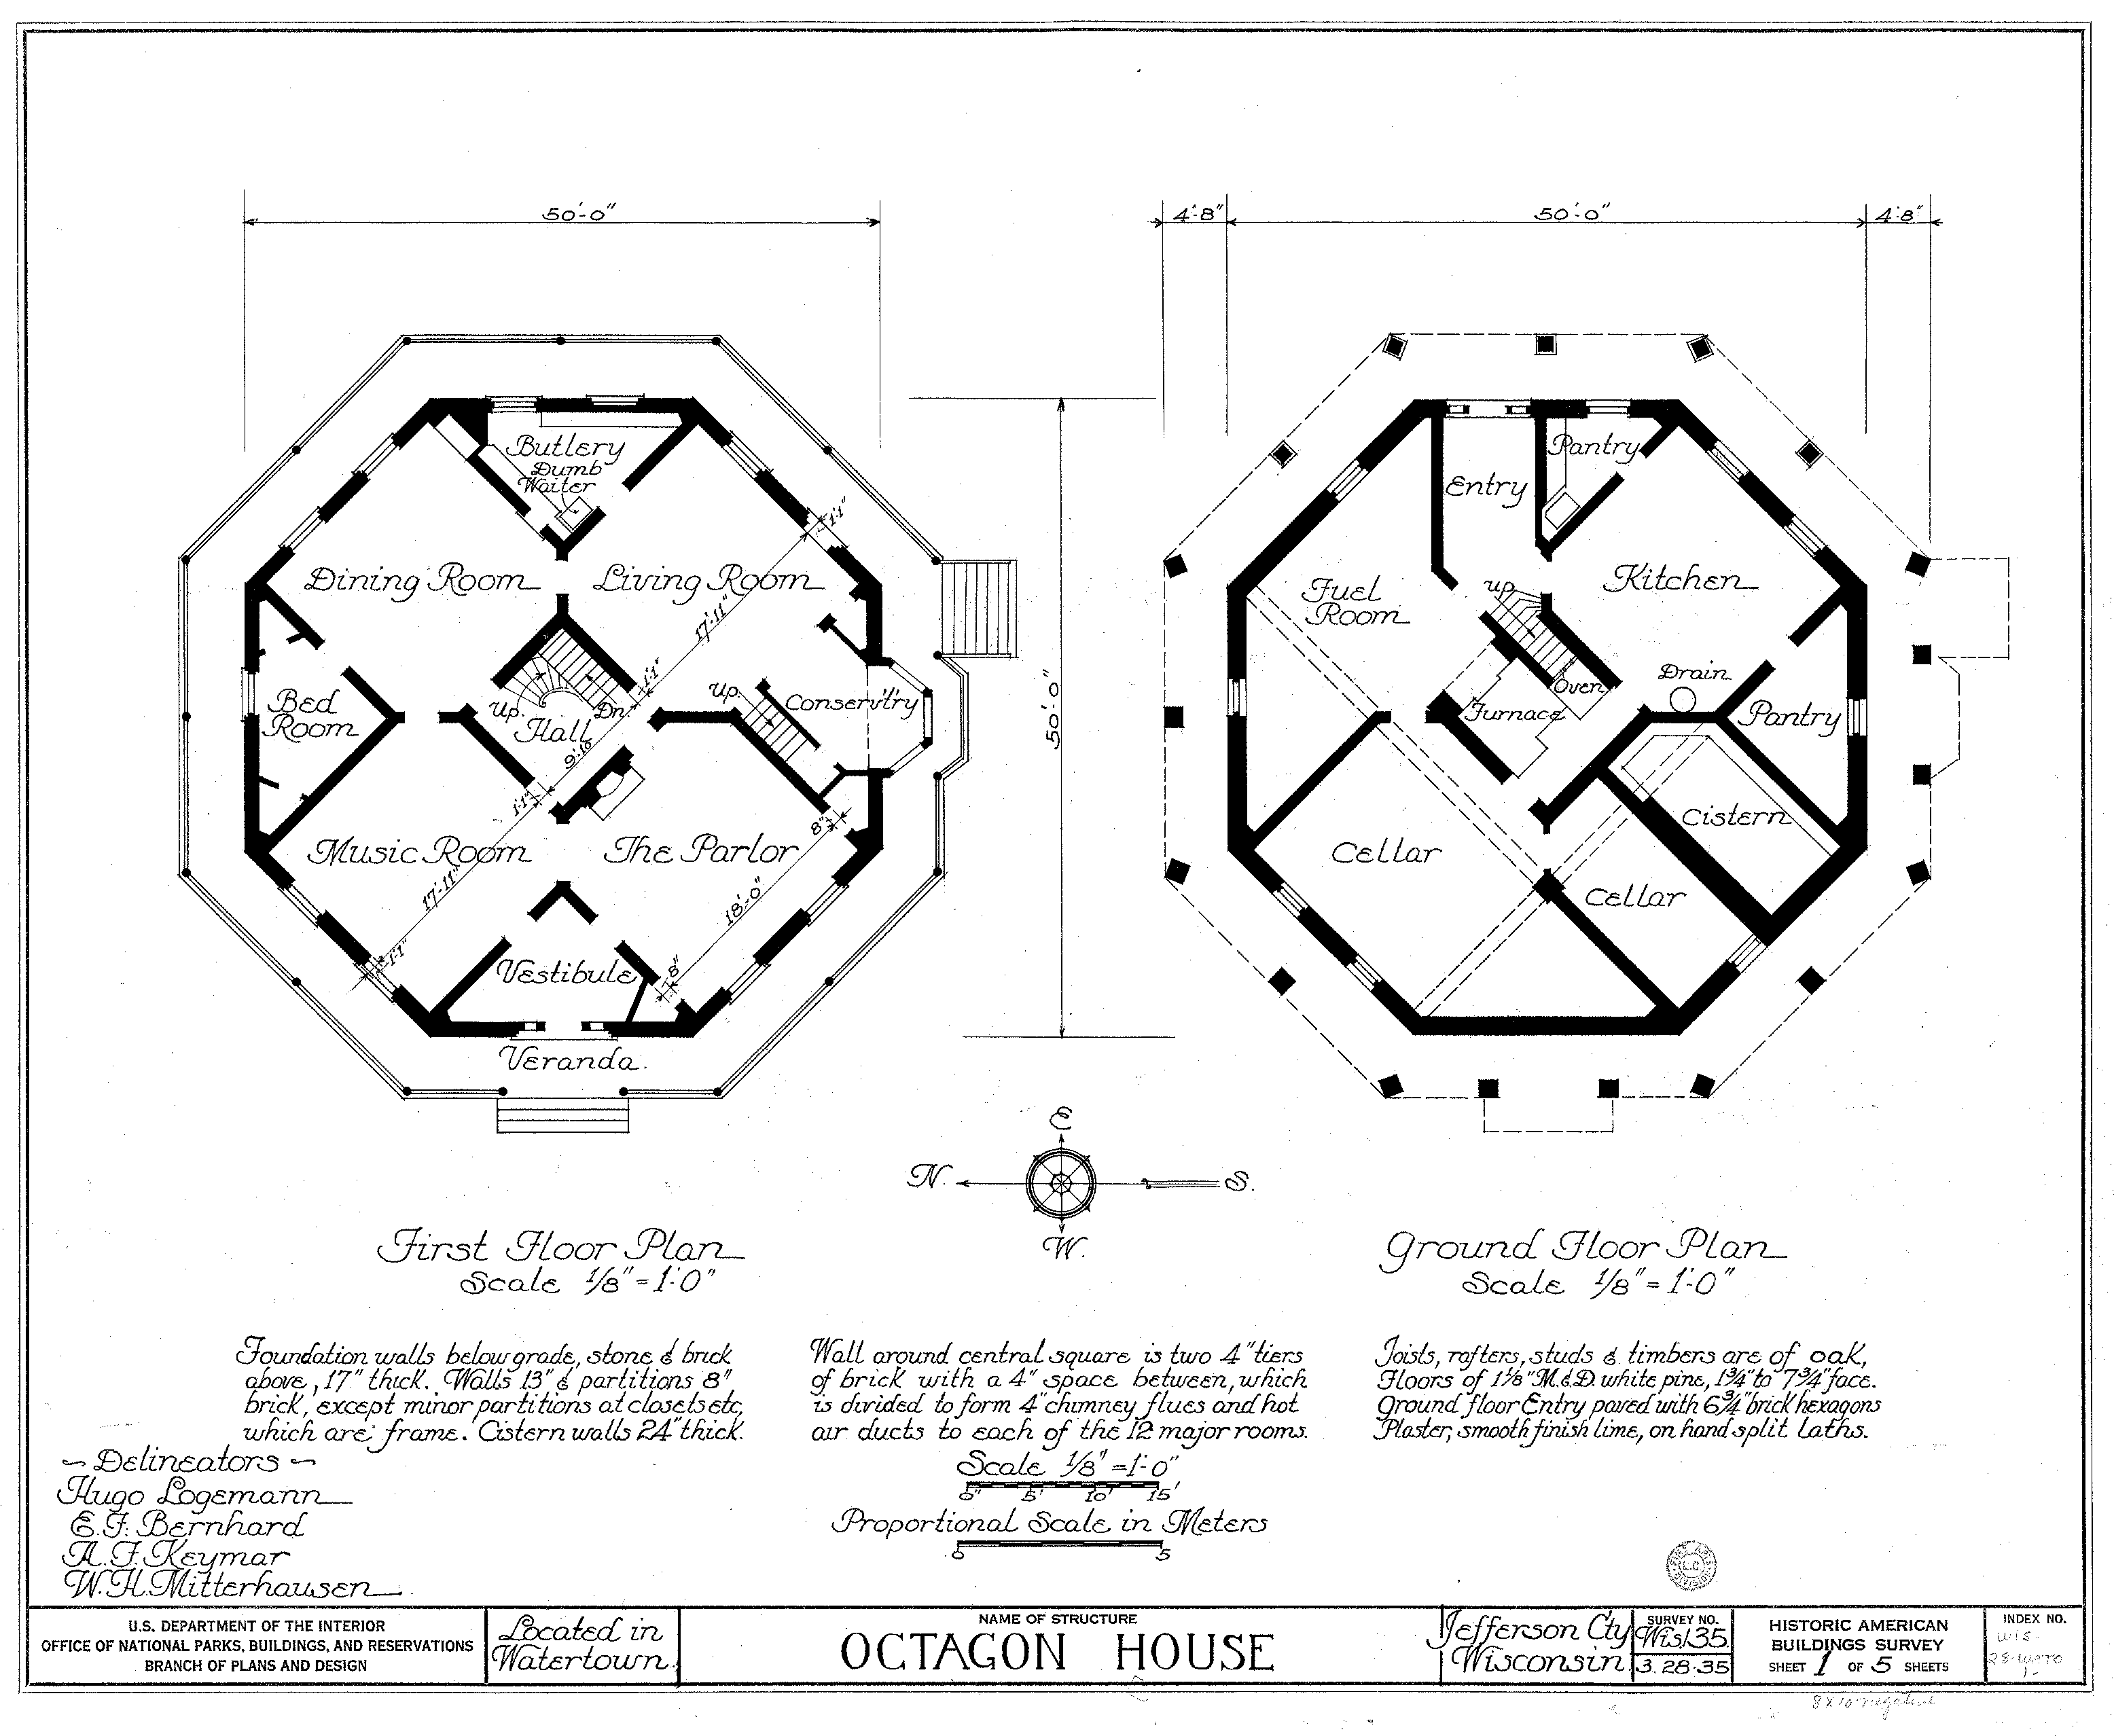 Plans For Houses design and build house plans Details About Octagon House Plans Home Vintage Blueprint Design Custom Building Book Octagonal